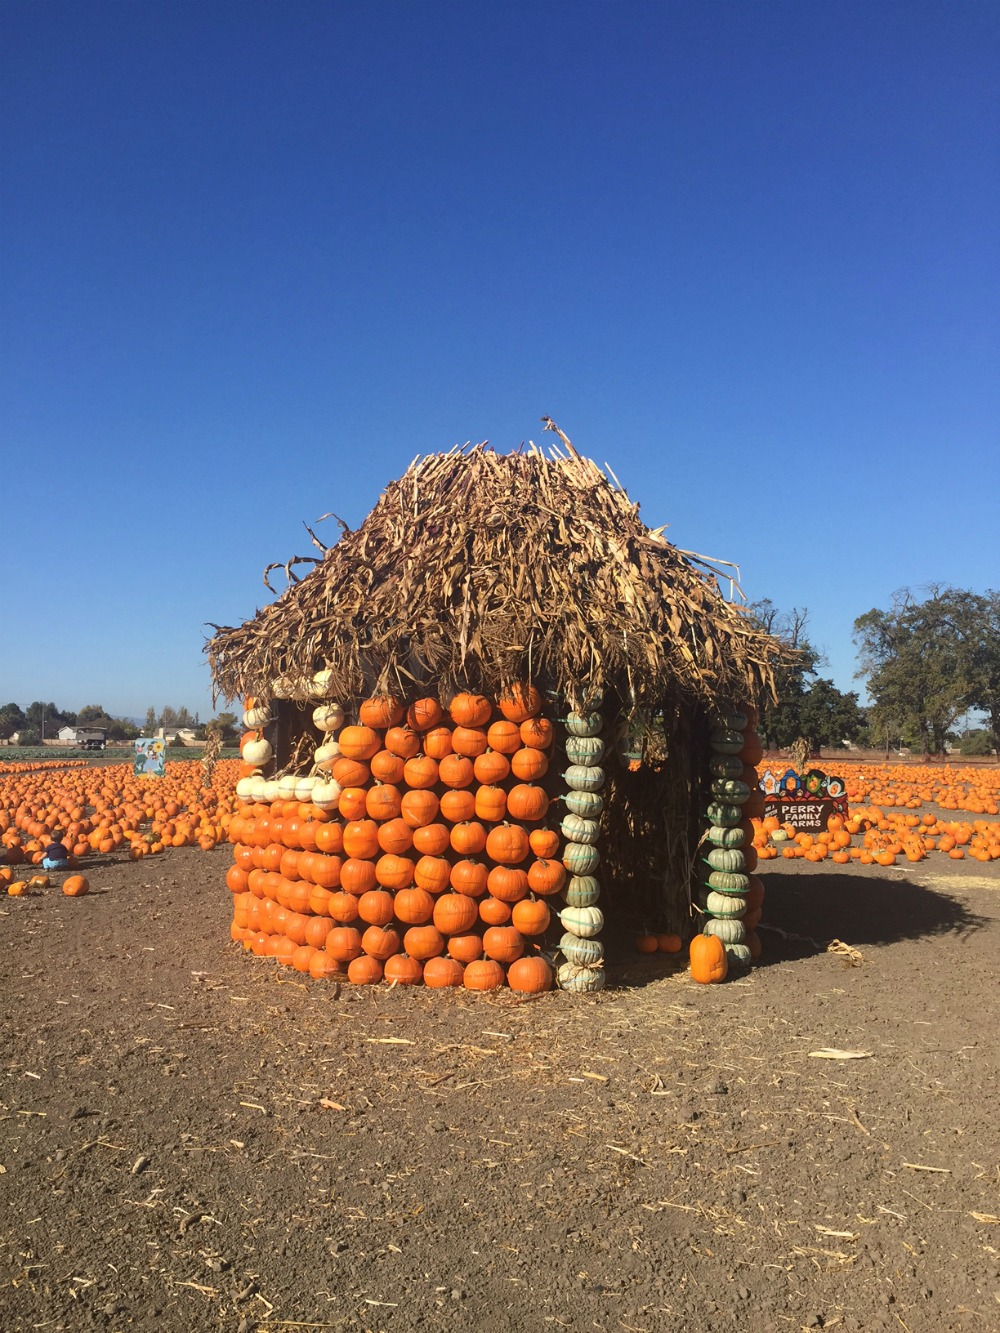 House of pumpkins in our hometown